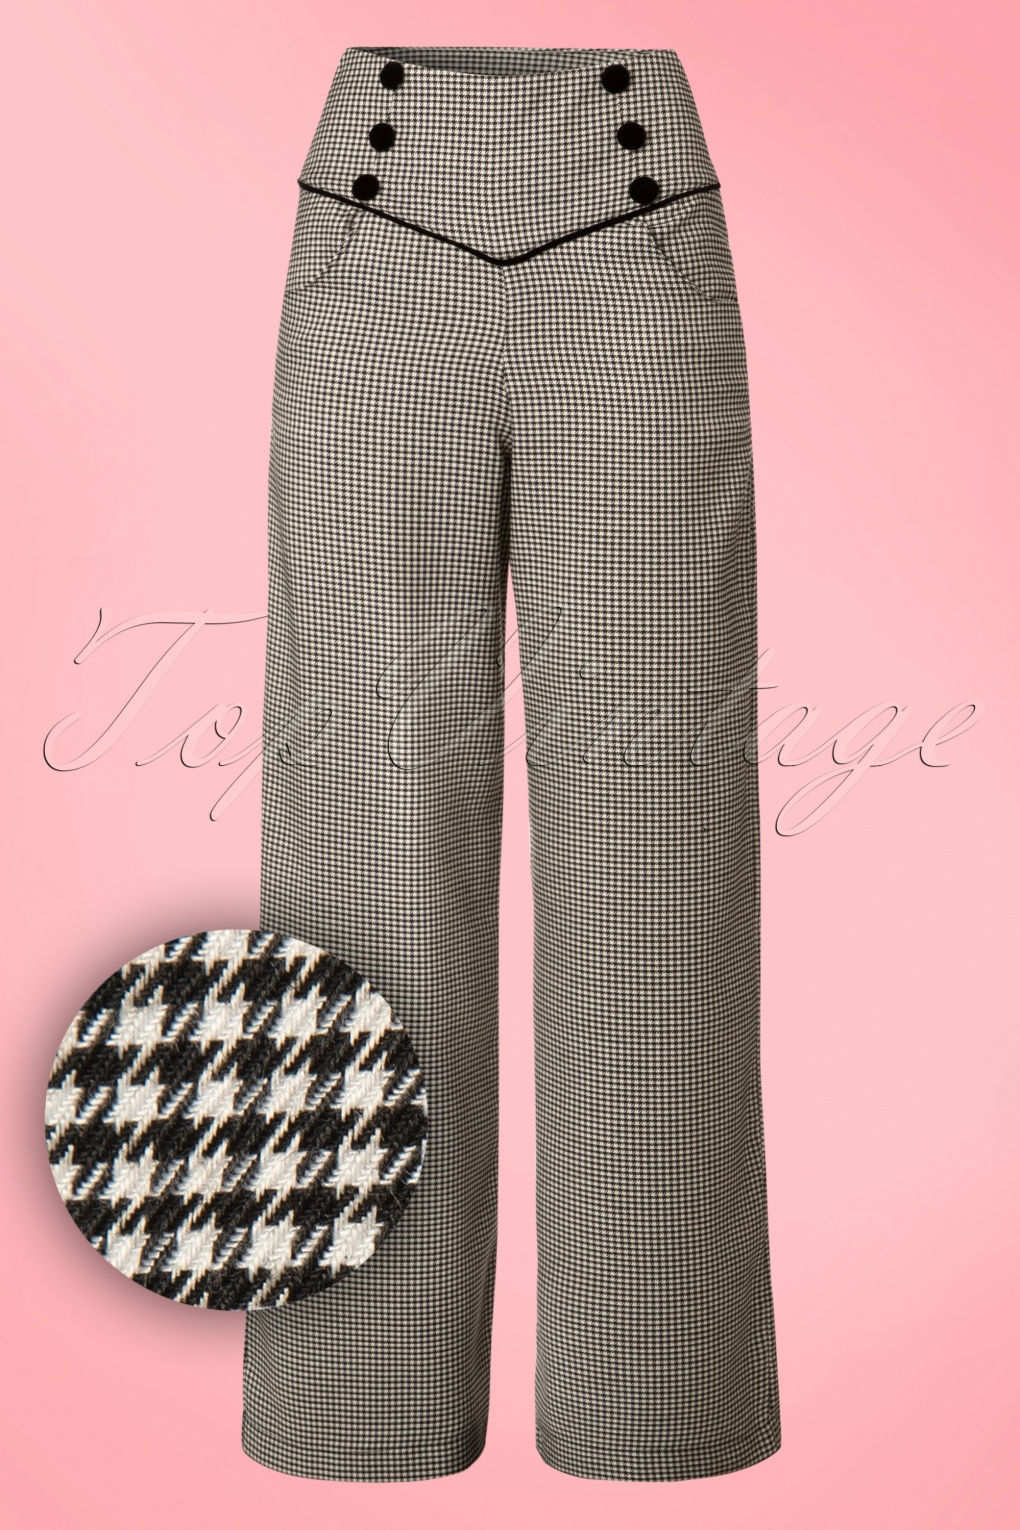 1950s Pants History for Women 50s Swept Off Her Feet Trousers in Black and White Houndstooth £38.79 AT vintagedancer.com